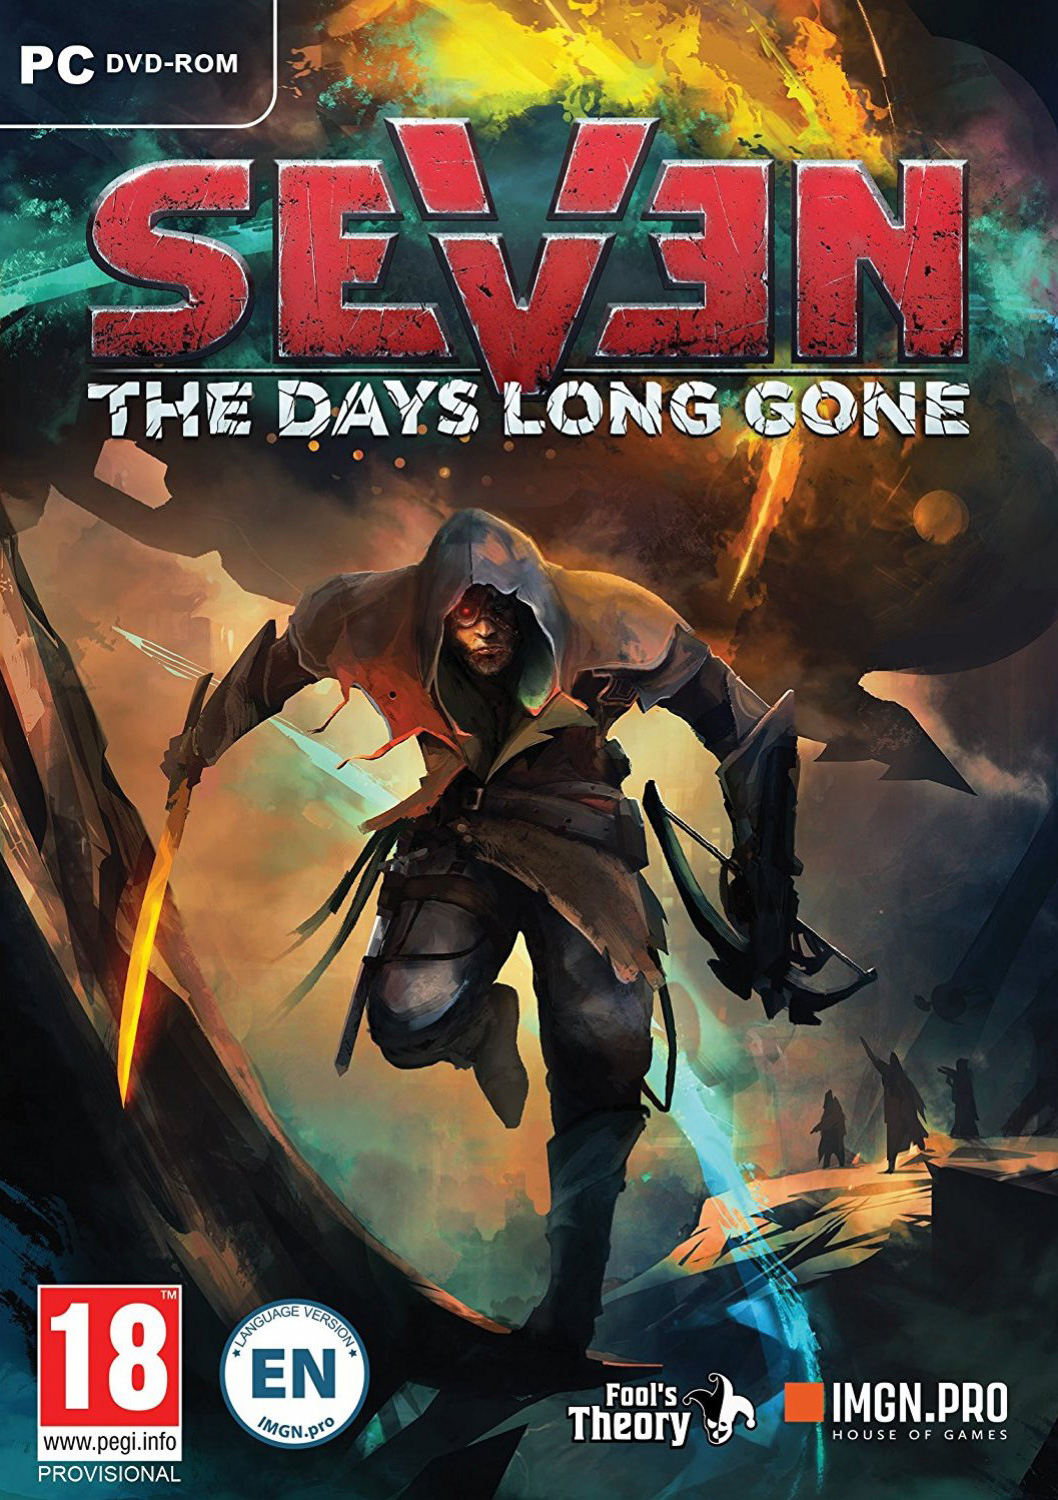 https://img5.downloadha.com/hosein/Game/December2017/01/Seven-The-Days-Long-Gone-pc-cover-large.jpg